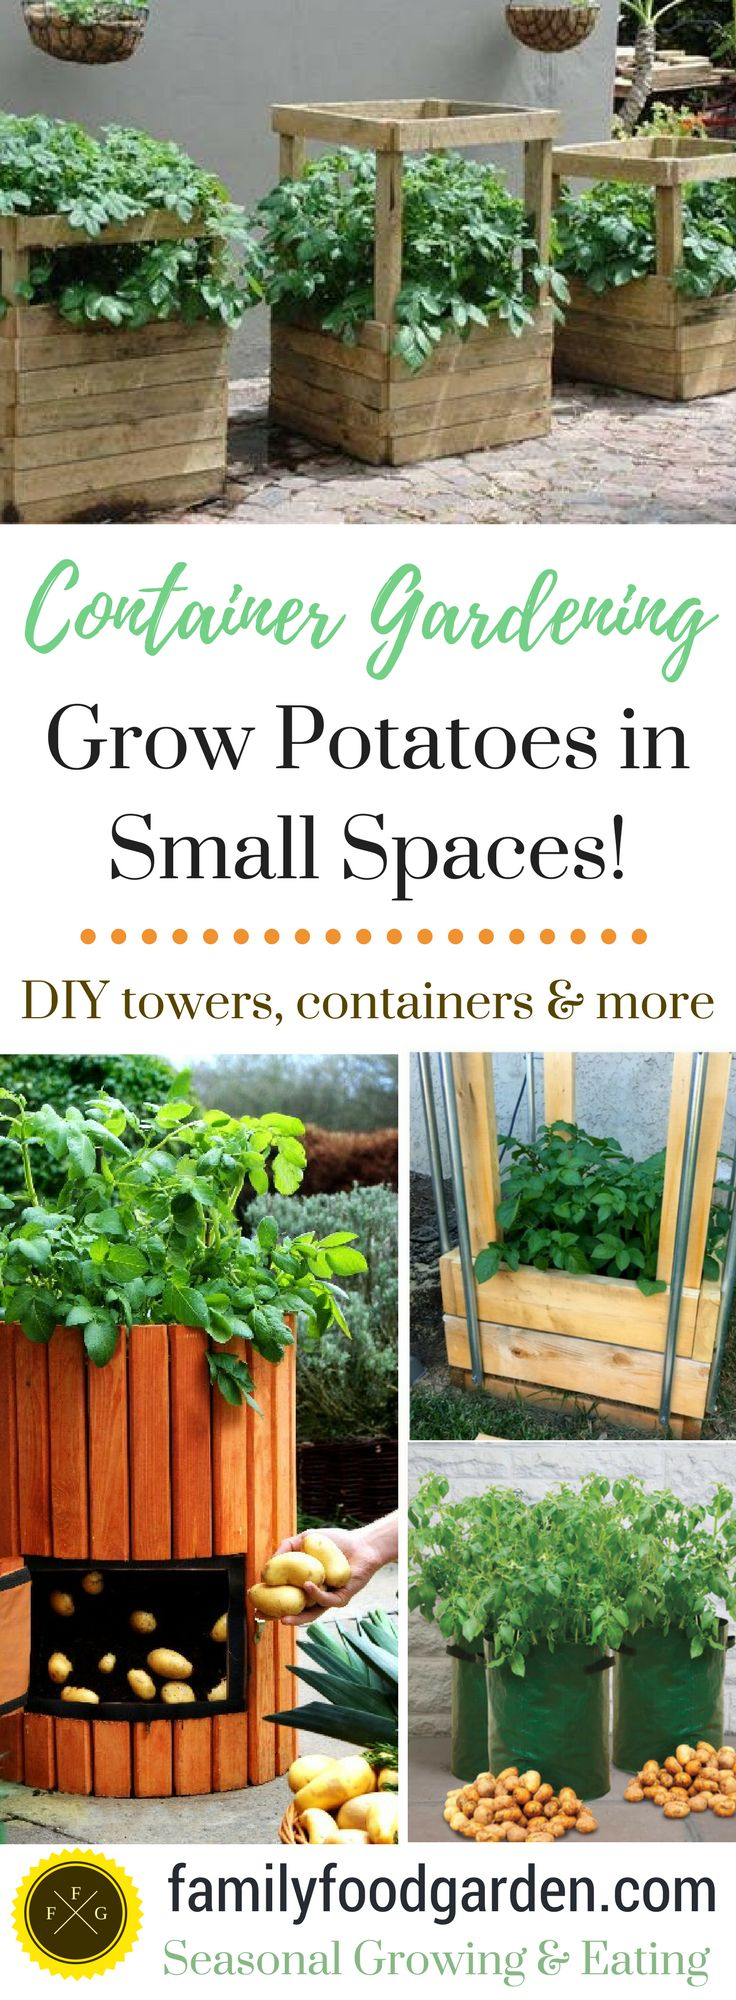 1000 ideas about grow potatoes on pinterest when to plant potatoes planting a garden and - Small space farming image ...